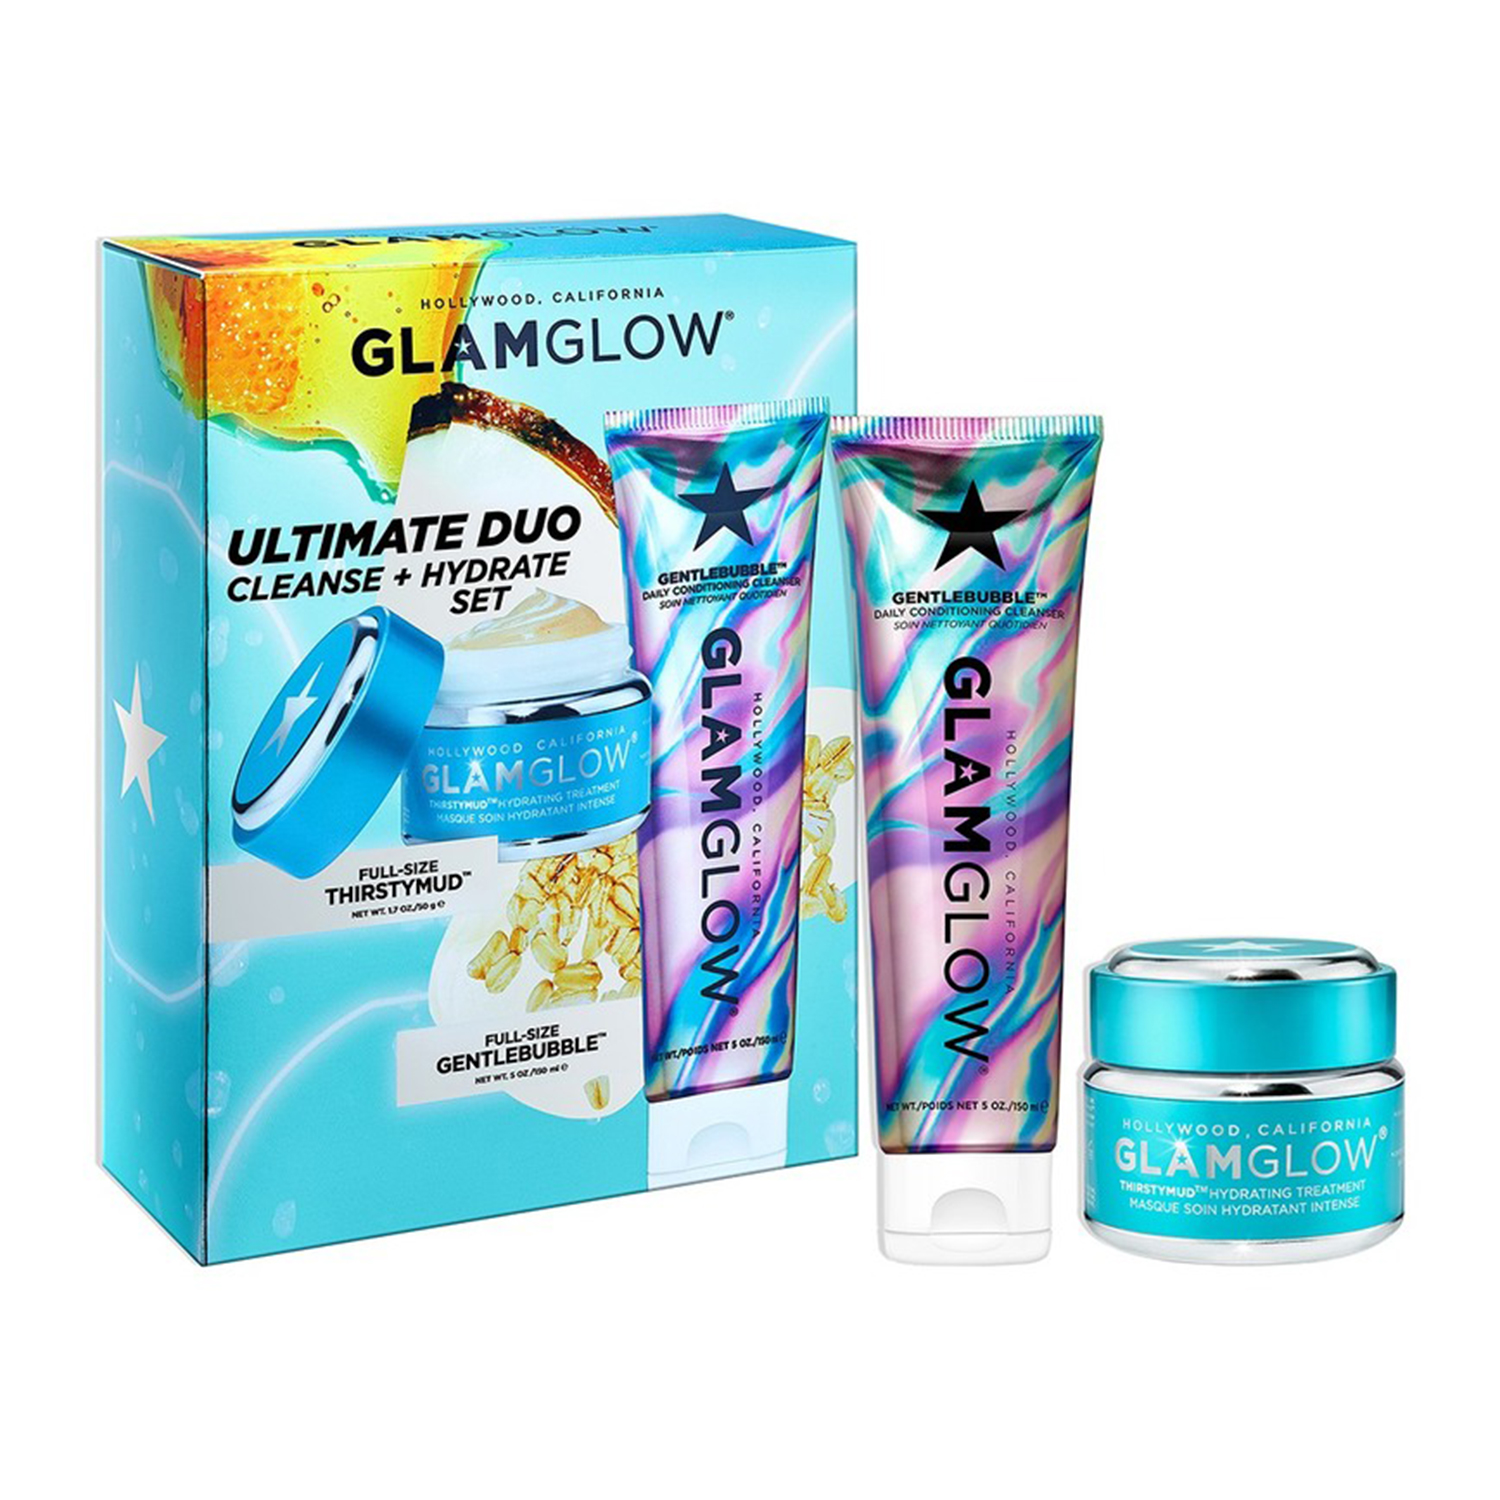 Glow Glam Ultimate Duo Cleanse Hydrate Thirstymud Set